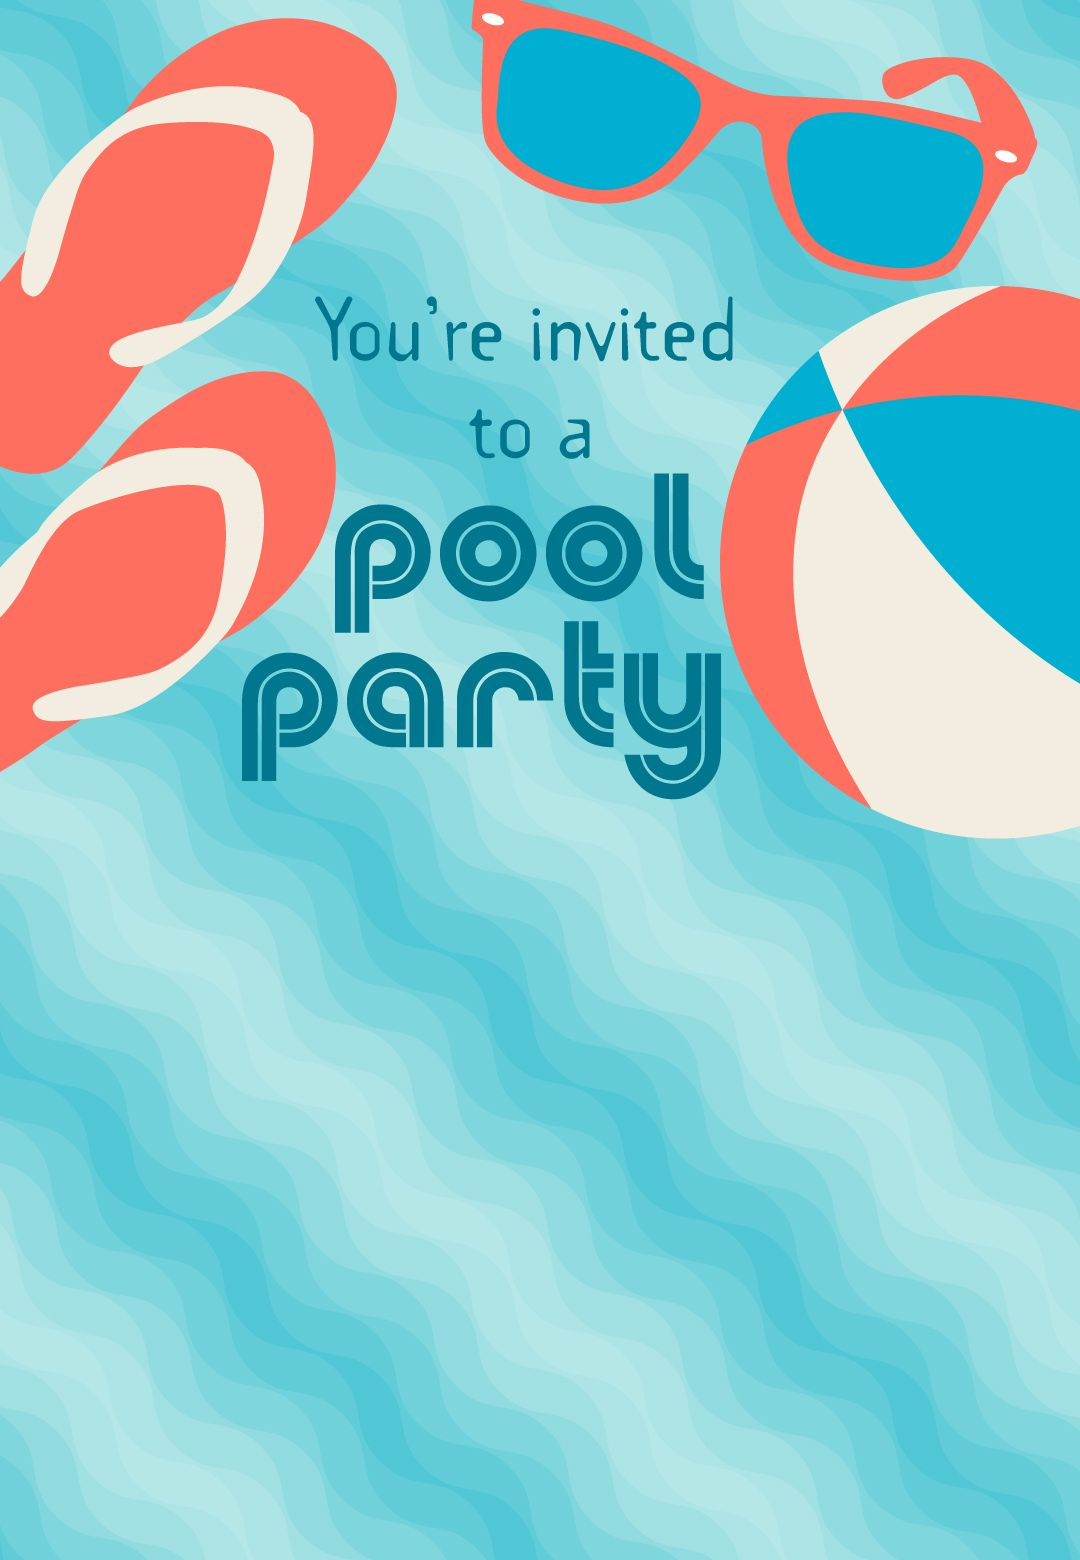 Free Printable Pool Party Stuff Invitation  I Love. Fancy Menu Template. Paw Patrol 1st Birthday. Ms Publisher Newsletter Template Free. Marketing Strategy Template Ppt